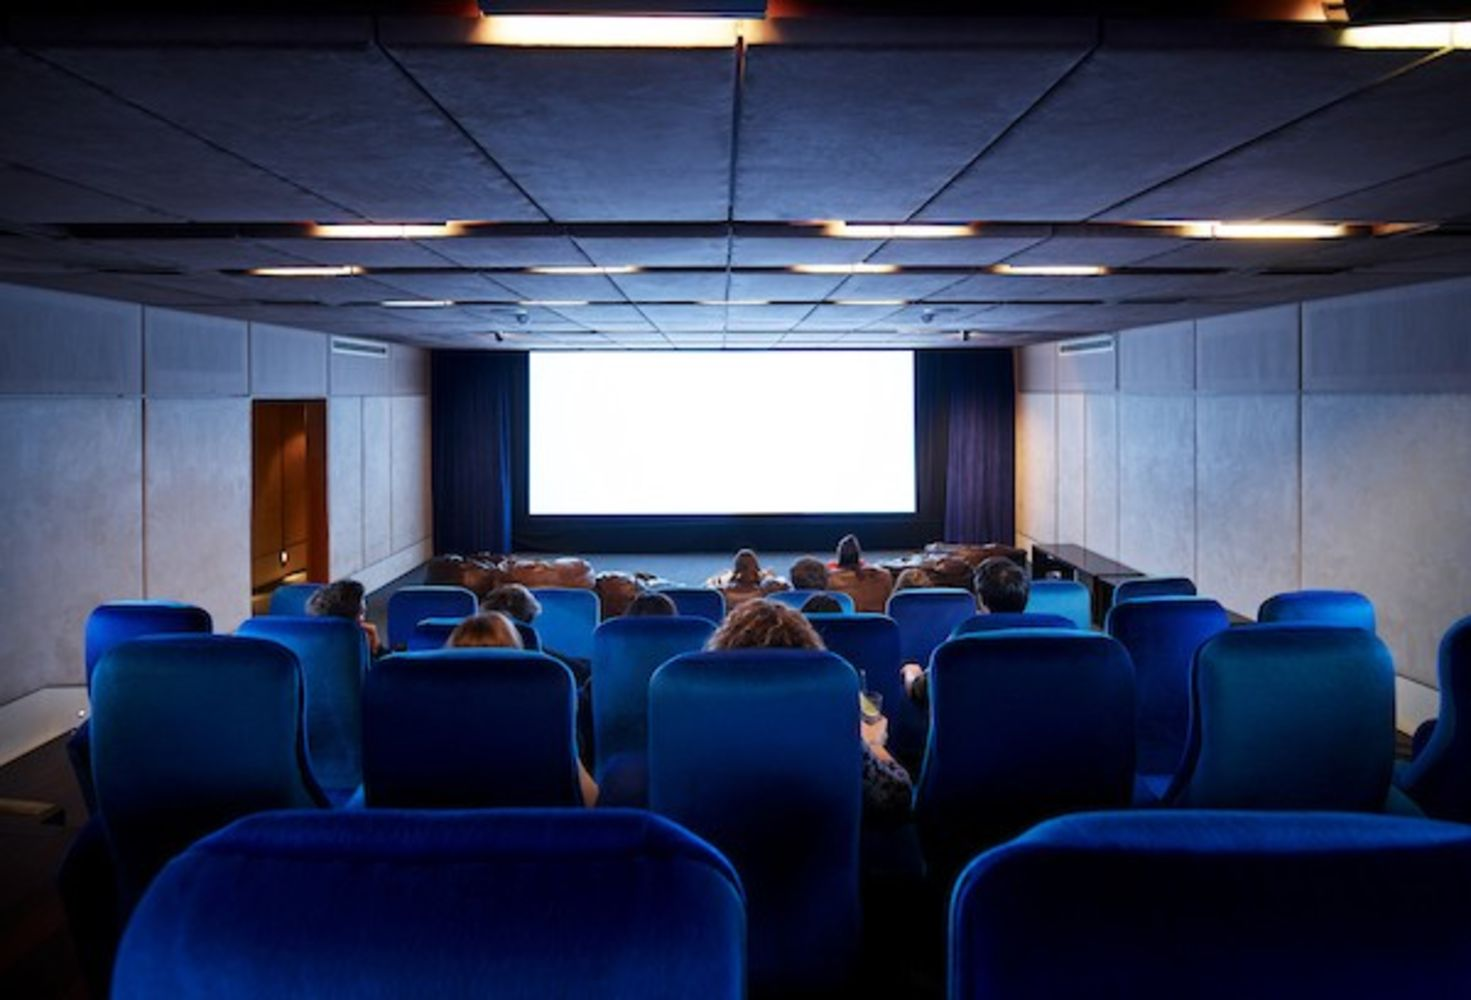 Timed Online Auction of The Former Cinema/Screening Room at The h Club